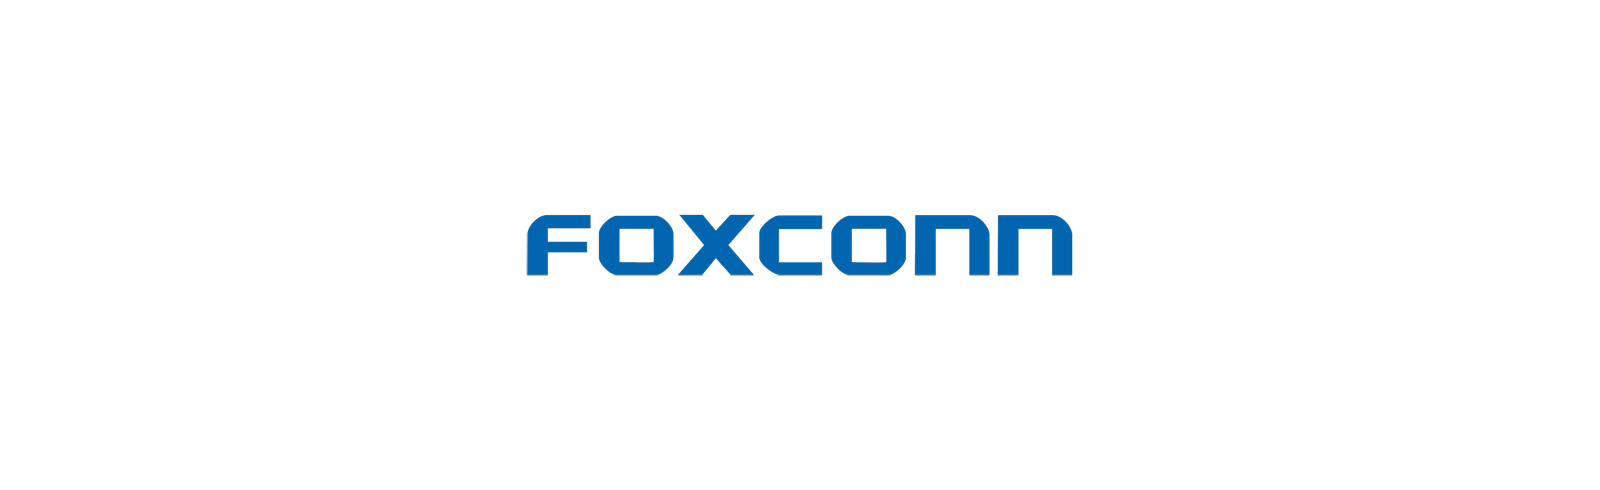 Foxconn will start mass manufacturing of iPhones in India next year